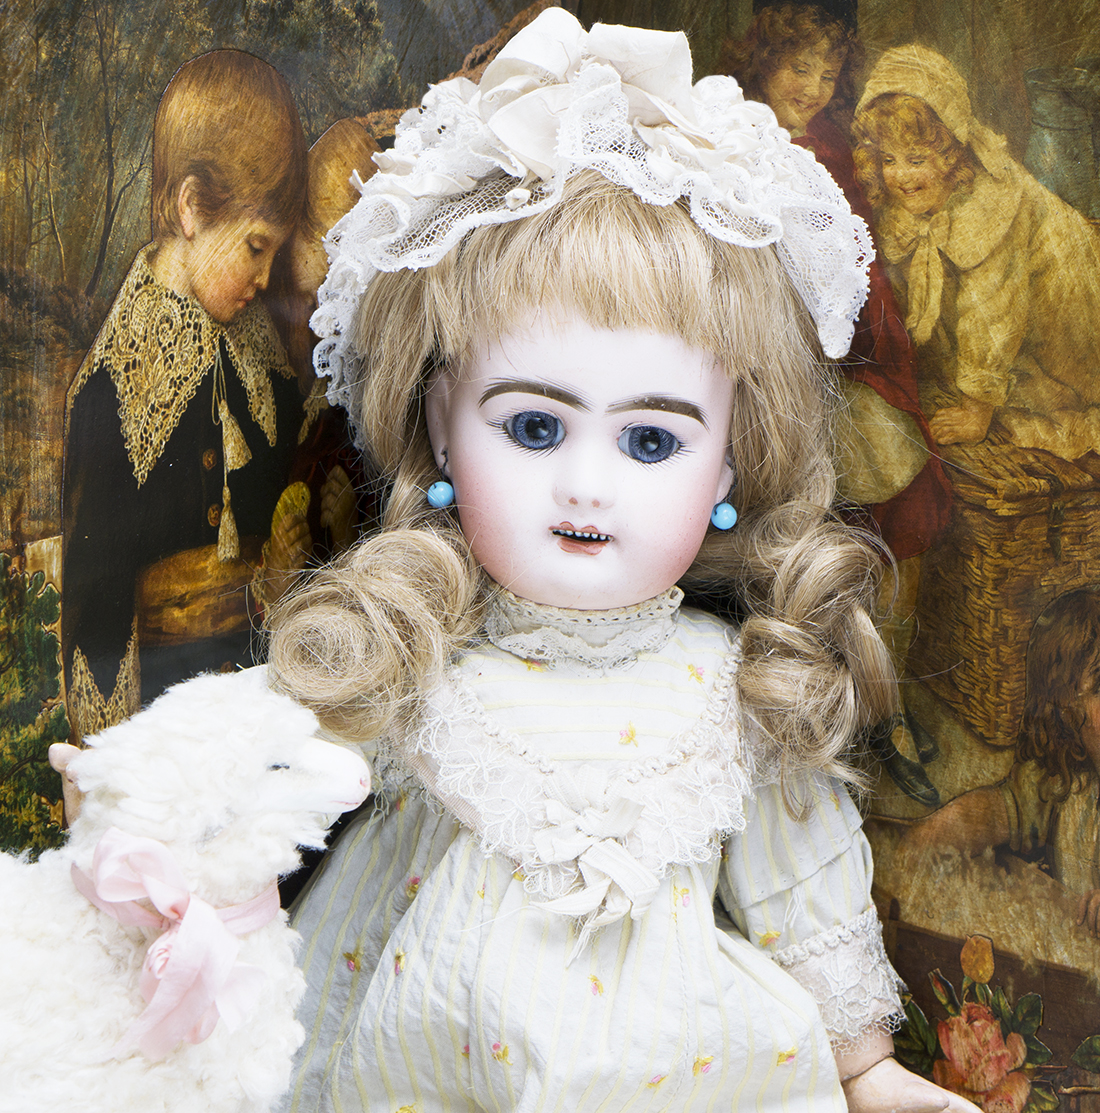 Denamur open mouth doll